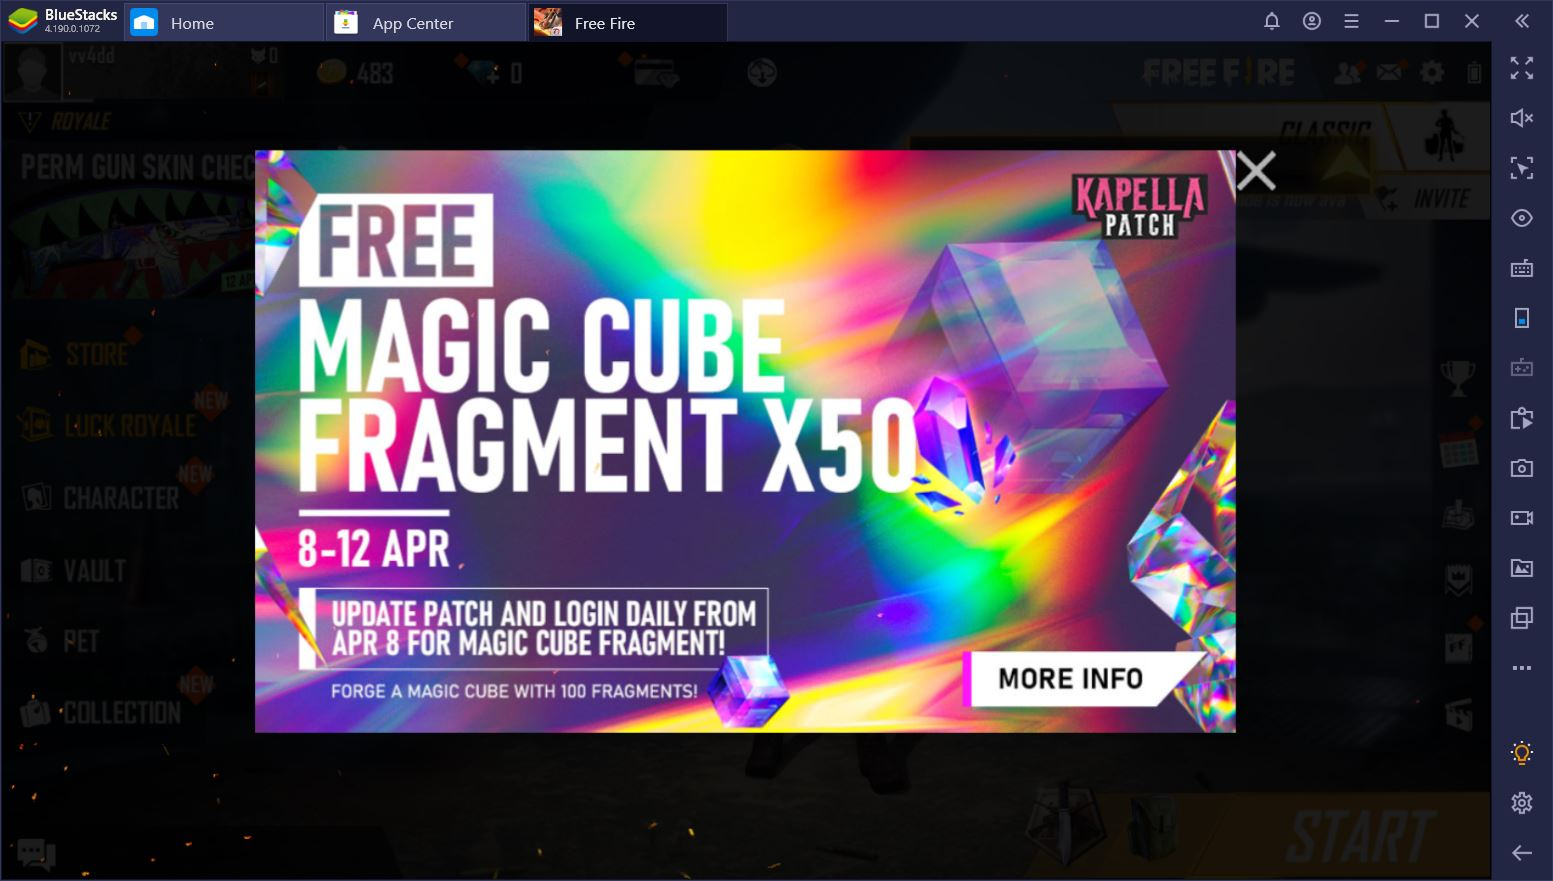 Free Fire on PC: Everything You Need to Know About the 2020 Kapella Patch